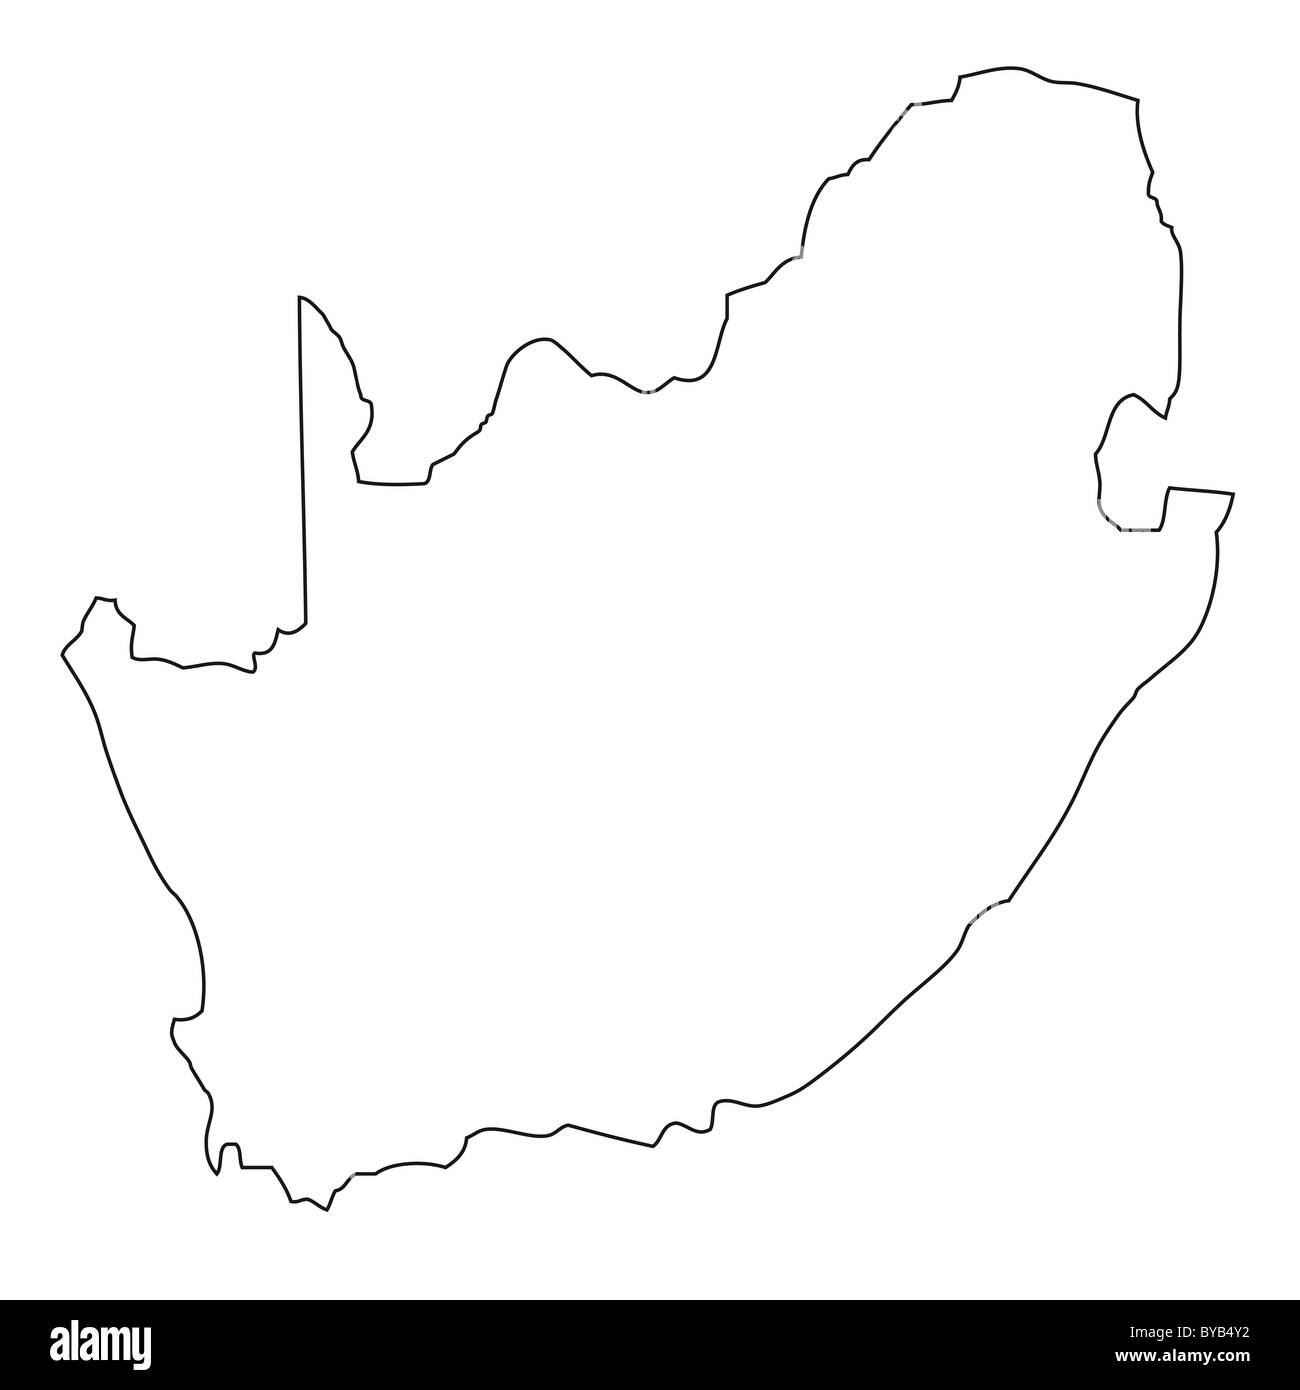 Outline Of Africa Map.South Africa Map Outline Stock Photos South Africa Map Outline